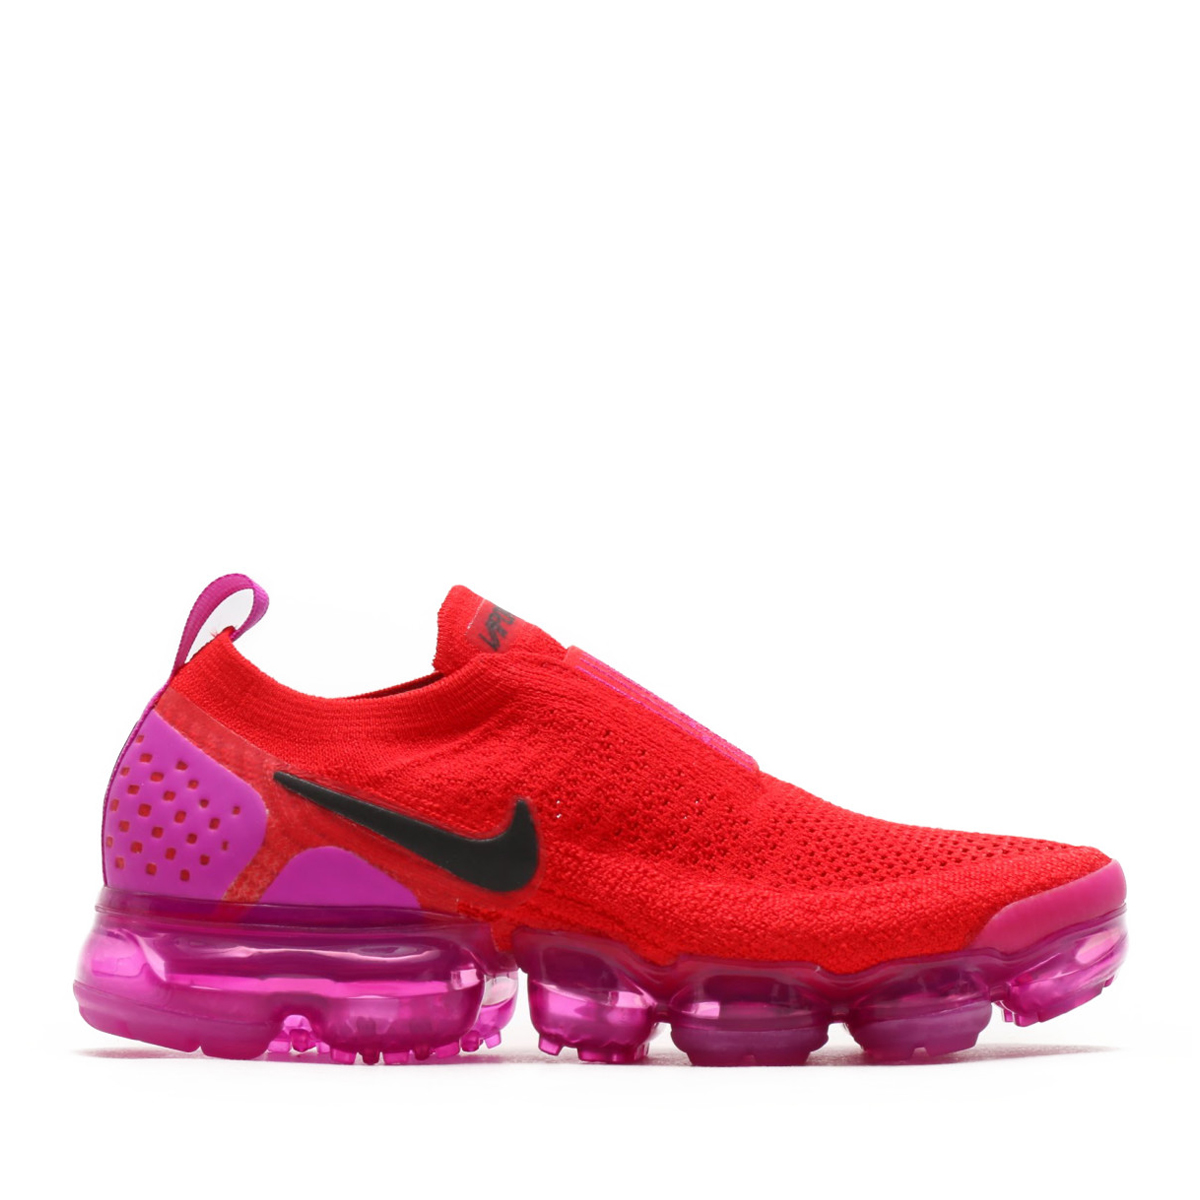 51a2cf11076 NIKE WMNS AIR VAPORMAX FK MOC 2 (Nike women air vapor max fried food knit  mock 2) UNIVERSITY RED BLACK-FUCHSIA BLAST 18SU-S